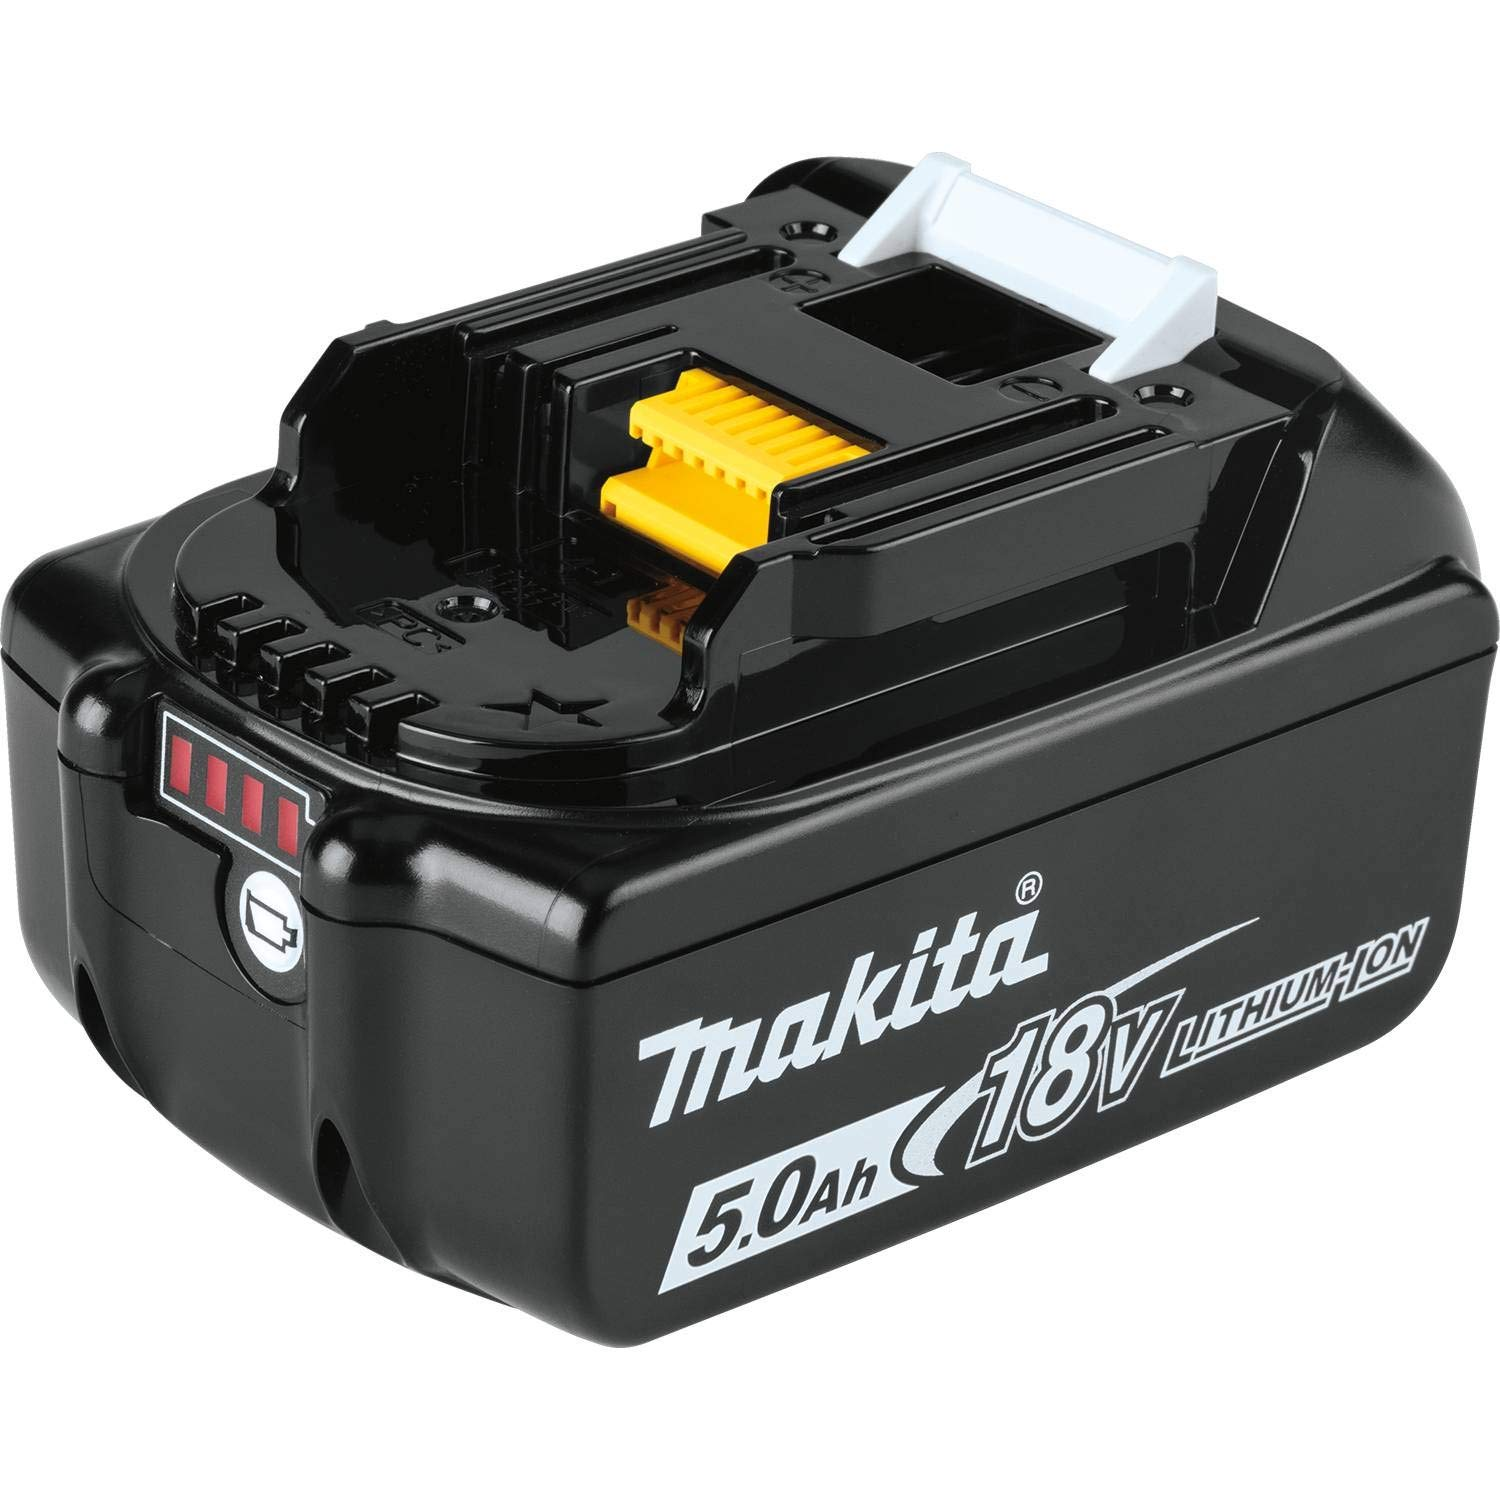 Makita XCU02PT1 Chainsaws product image 3